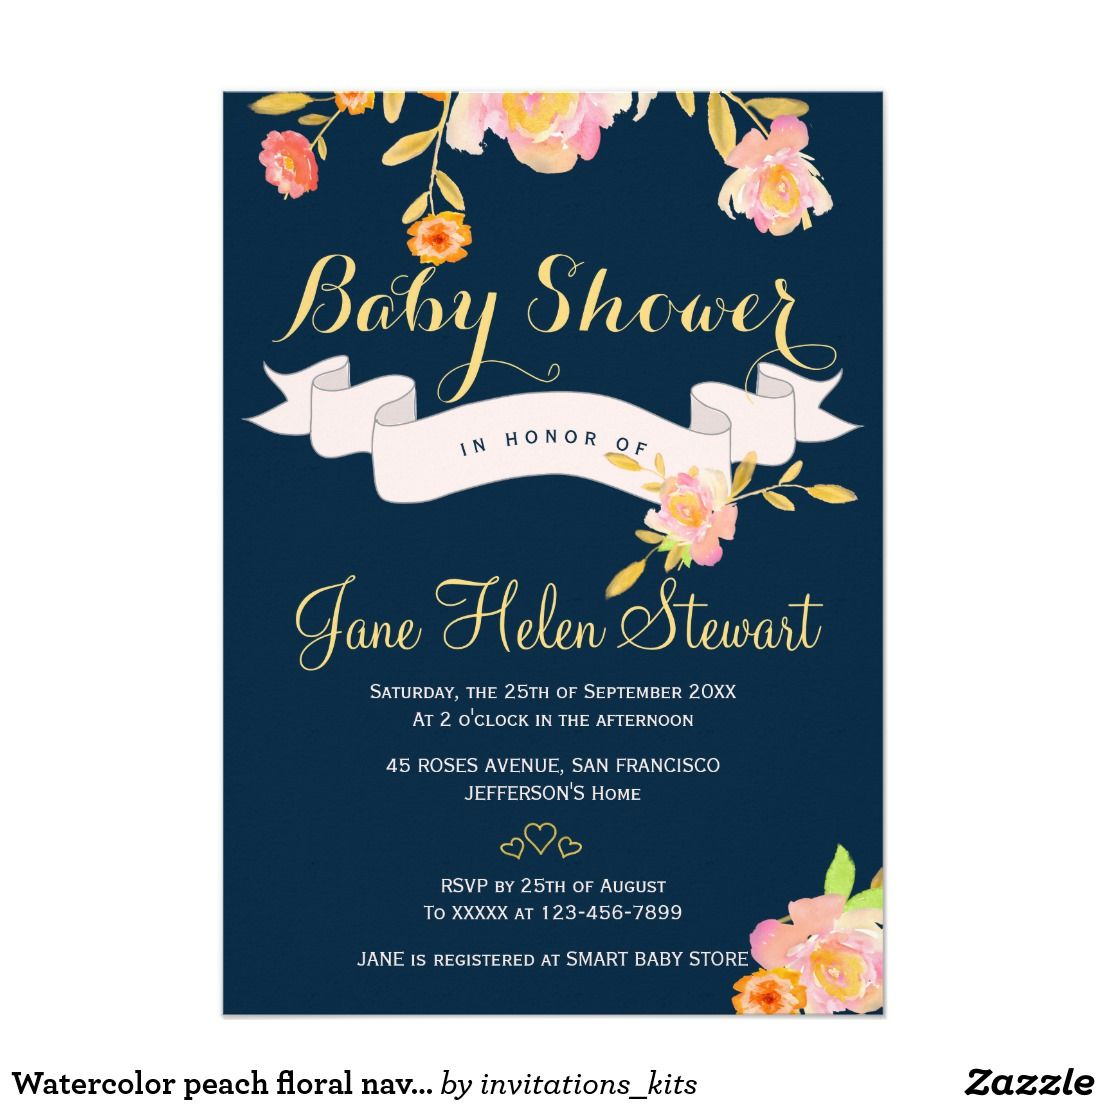 Watercolor peach floral navy blue baby shower invitation | Birth